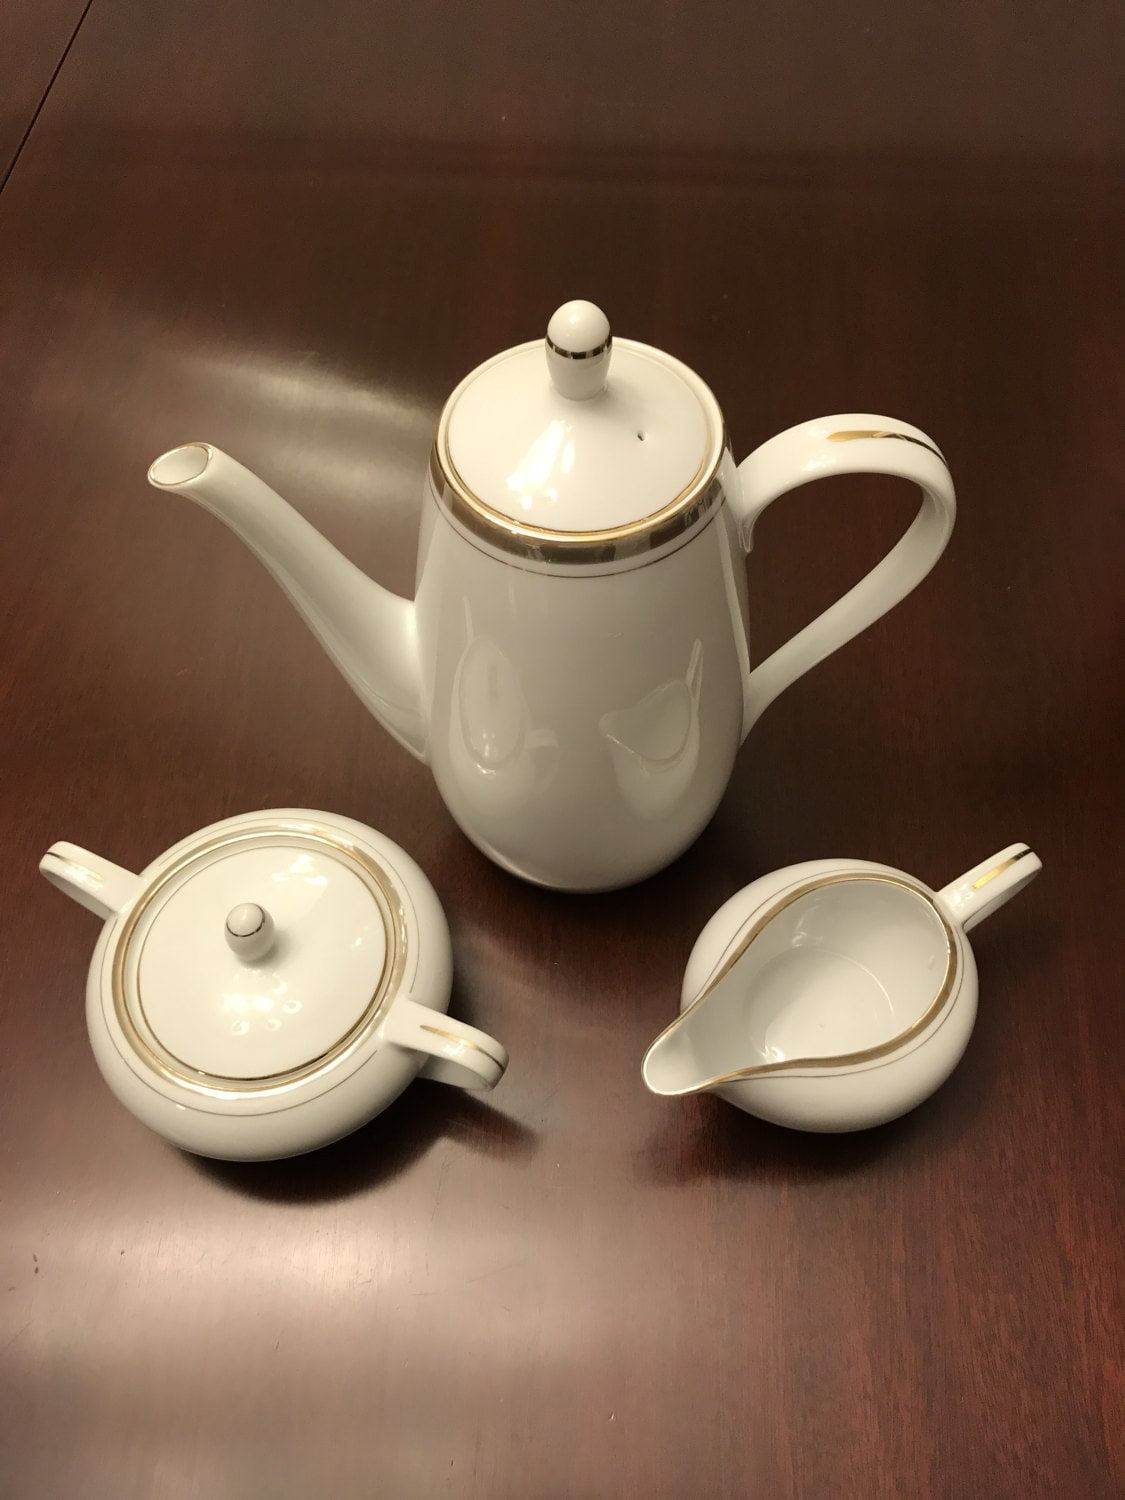 Vintage Tea Set, Coffee Service, Royalton Golden Elegance